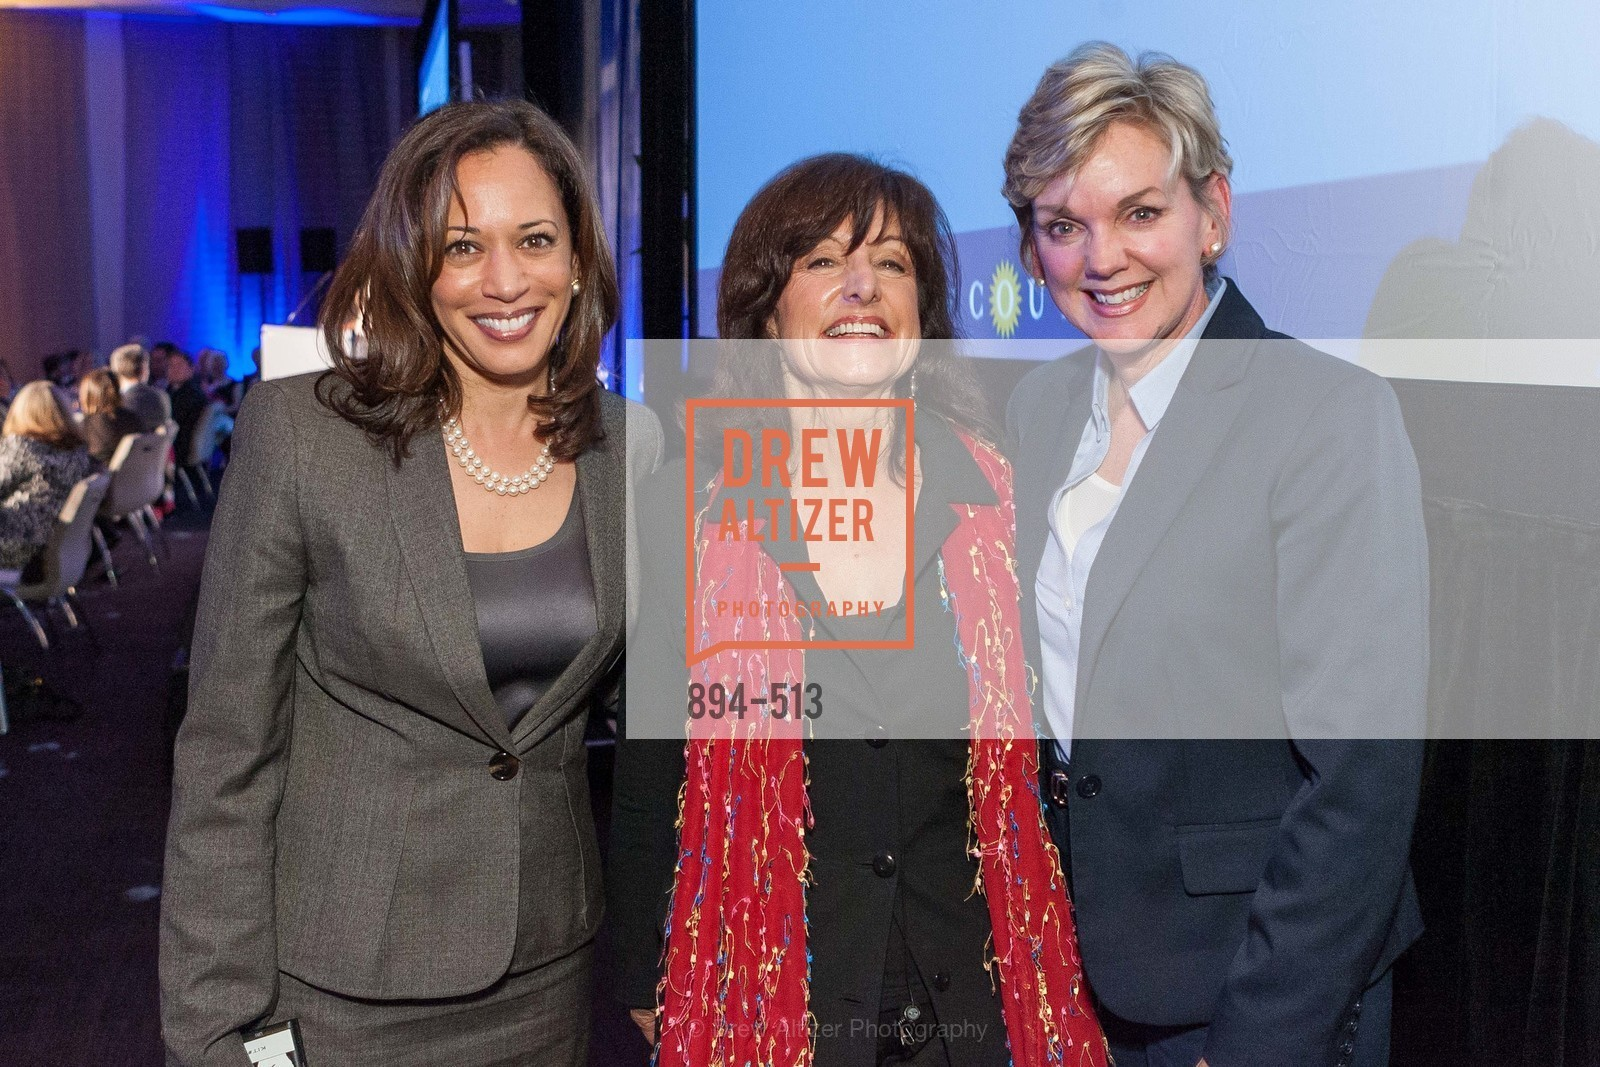 Kamala Harris, Carla Marinucci, Jennifer Granholm, Photo #894-513